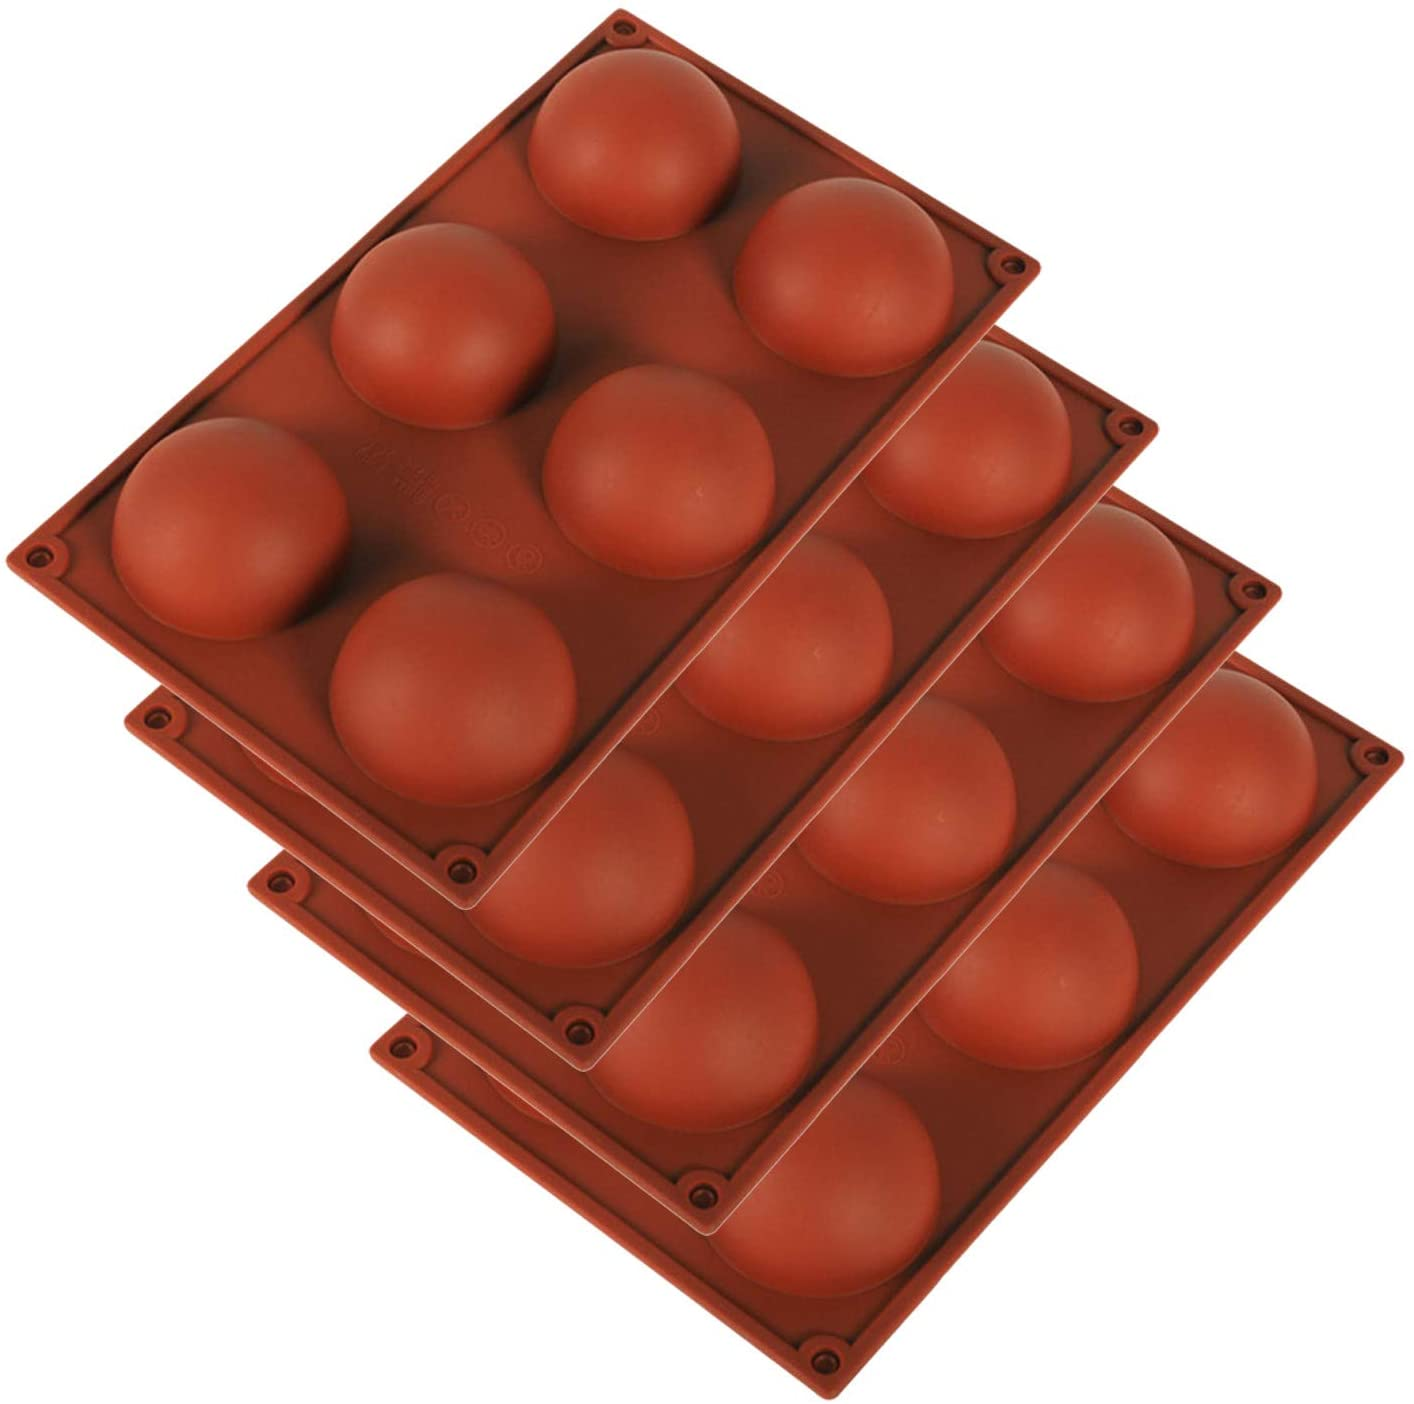 4PC Food Grade Silicone Half Large Ball Mold for DIY Chocolate Cupcake Cake Muffin Baking Non Stick Mold,(NVL-5)